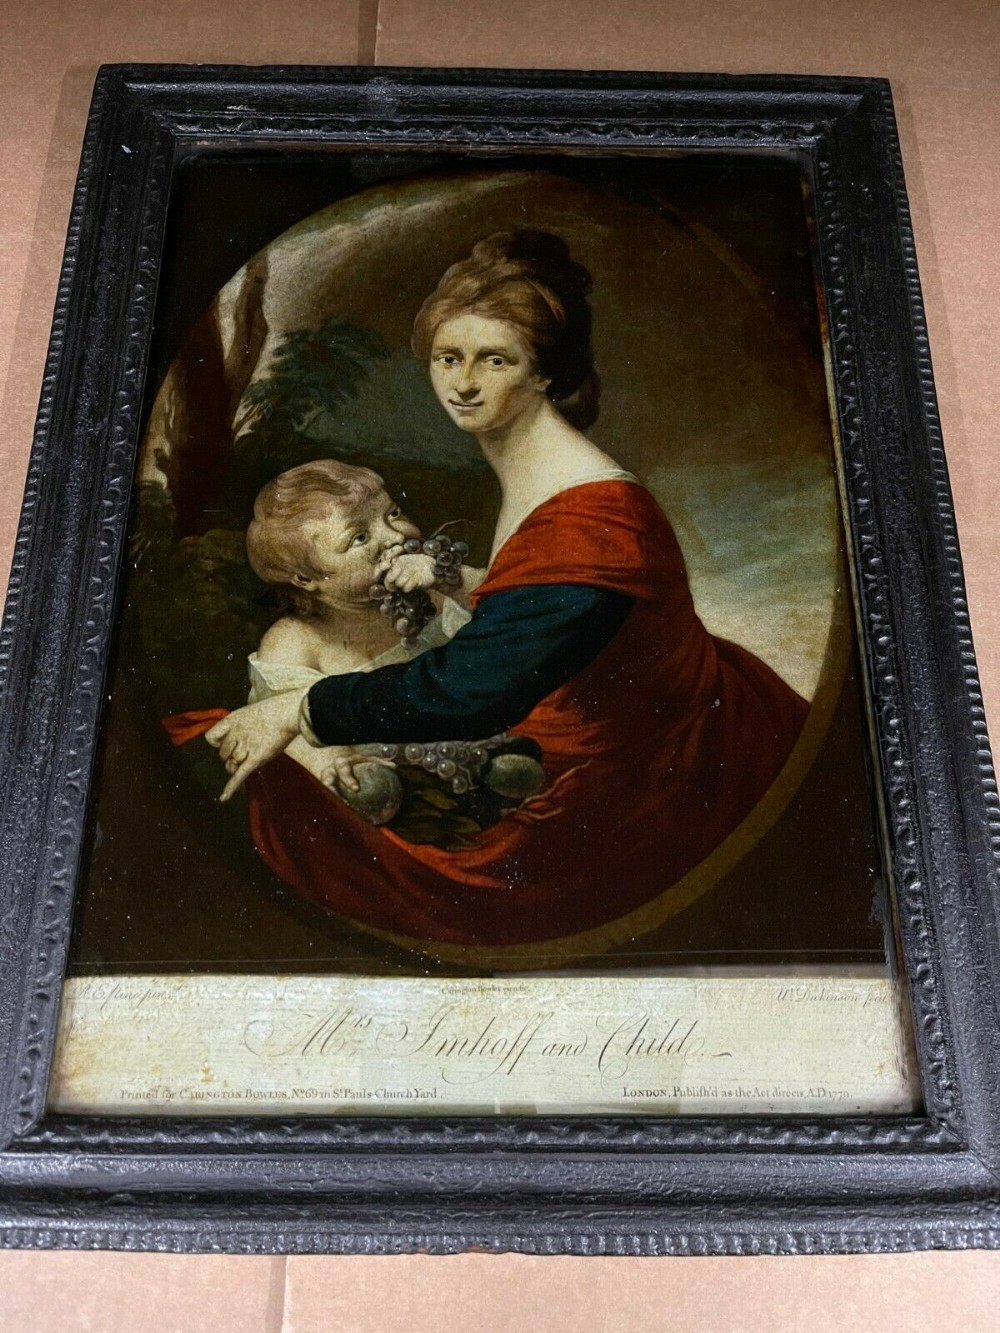 antique 18th century reverse print painted on glass georgian lady picture